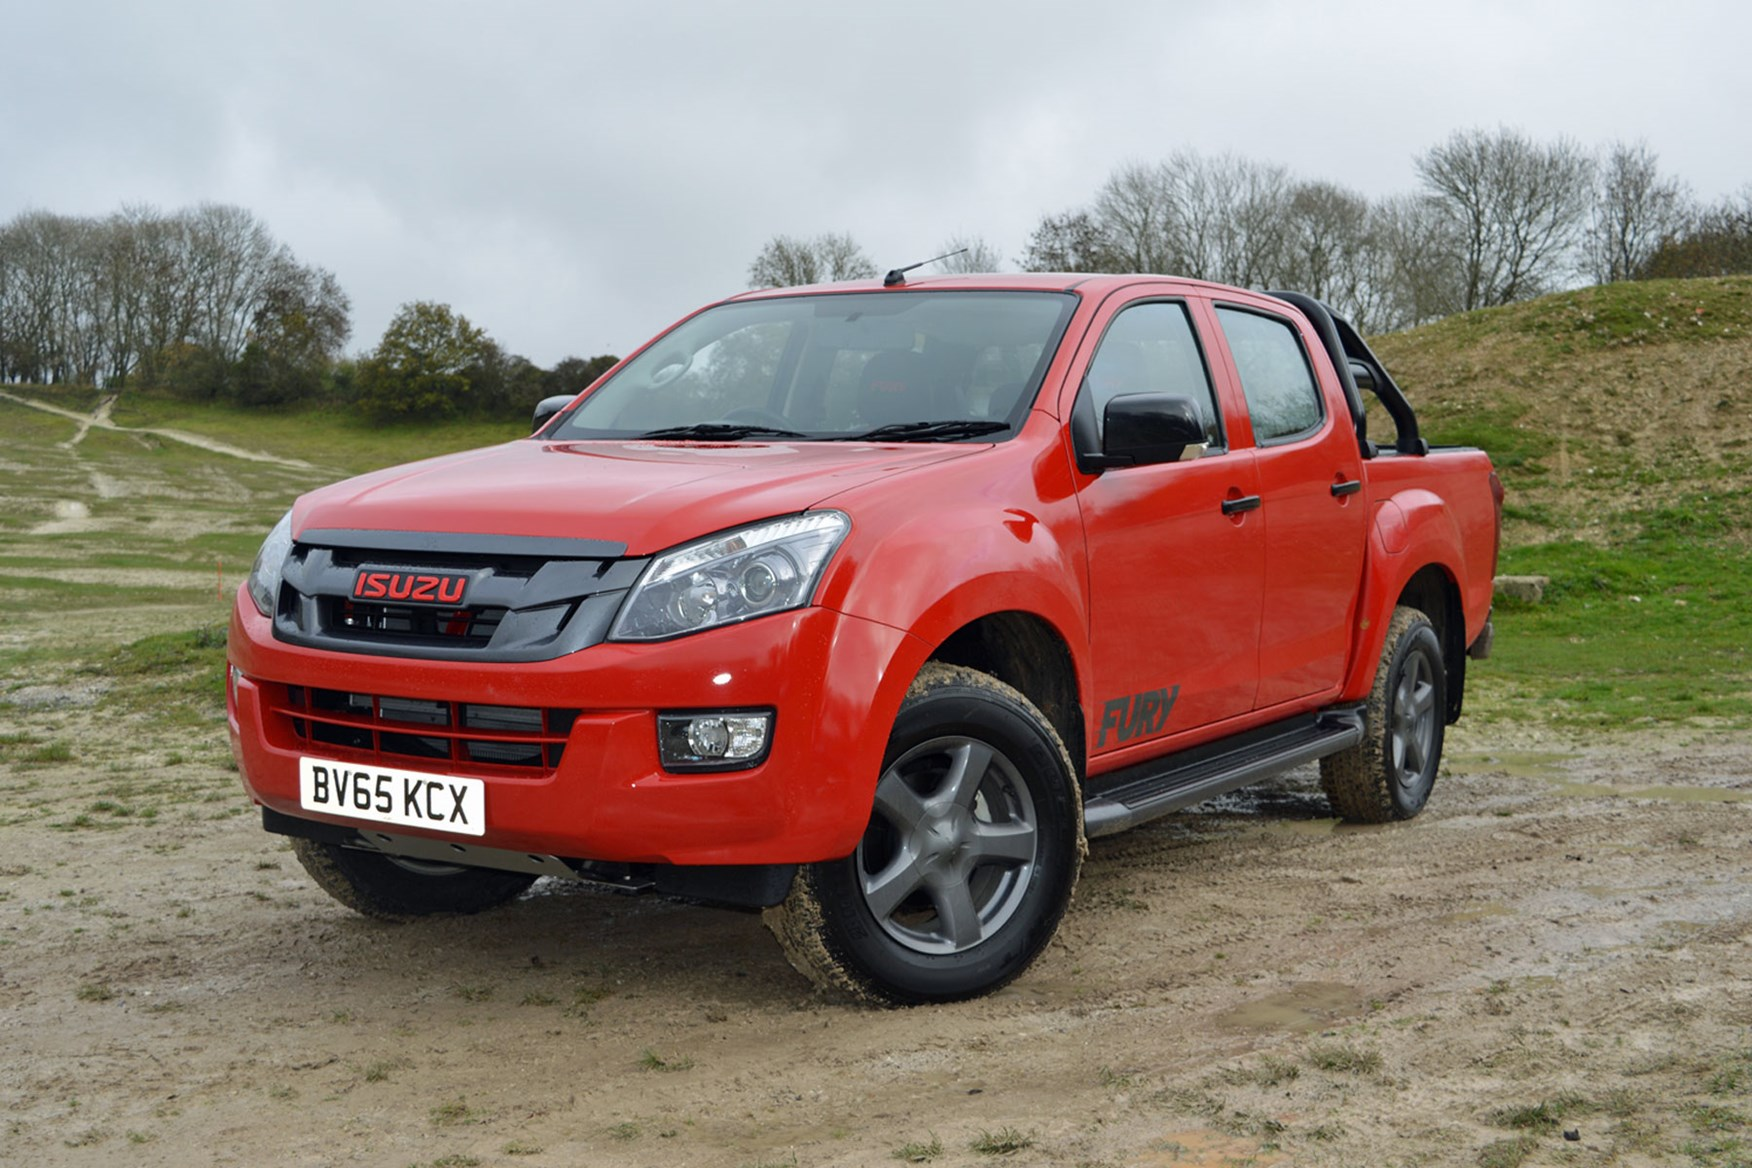 Isuzu D-Max Fury 2.5 review - front view, red